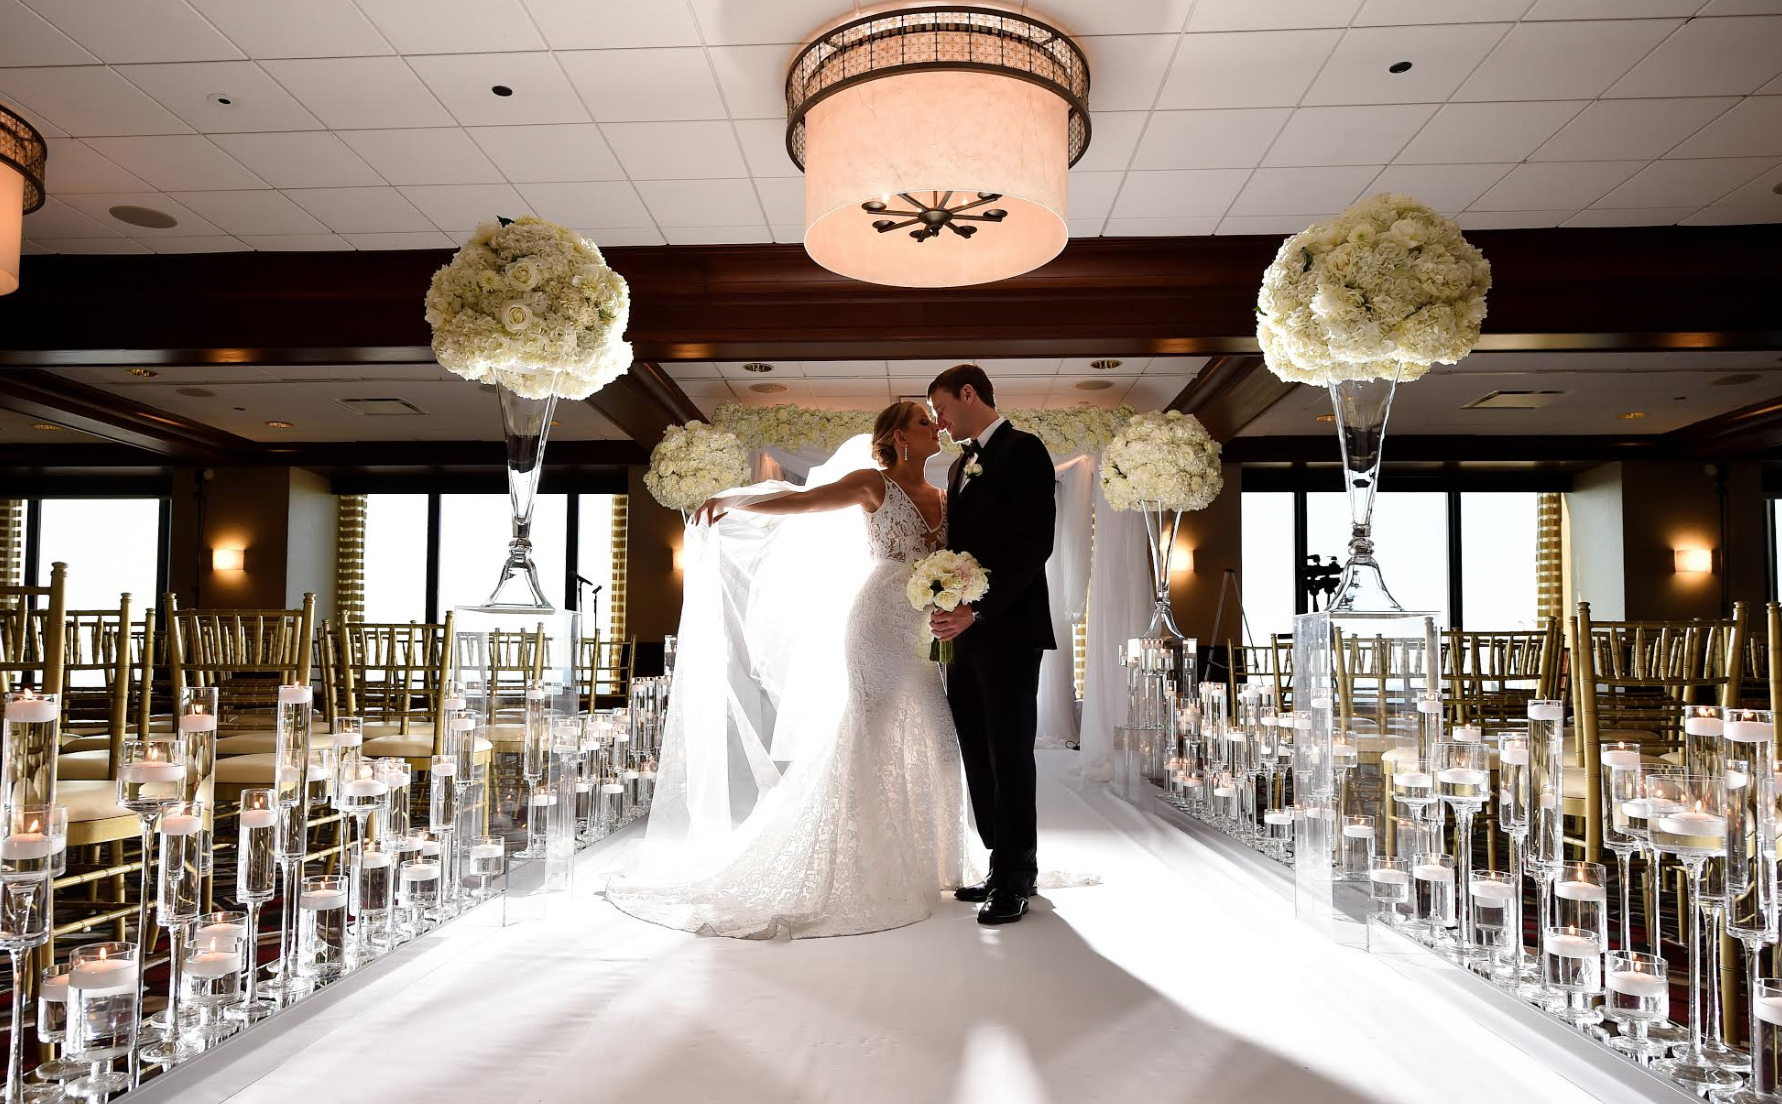 10-of-Our-Favorite-Luxury-Wedding-Venues-in-the-U.S.-25.png